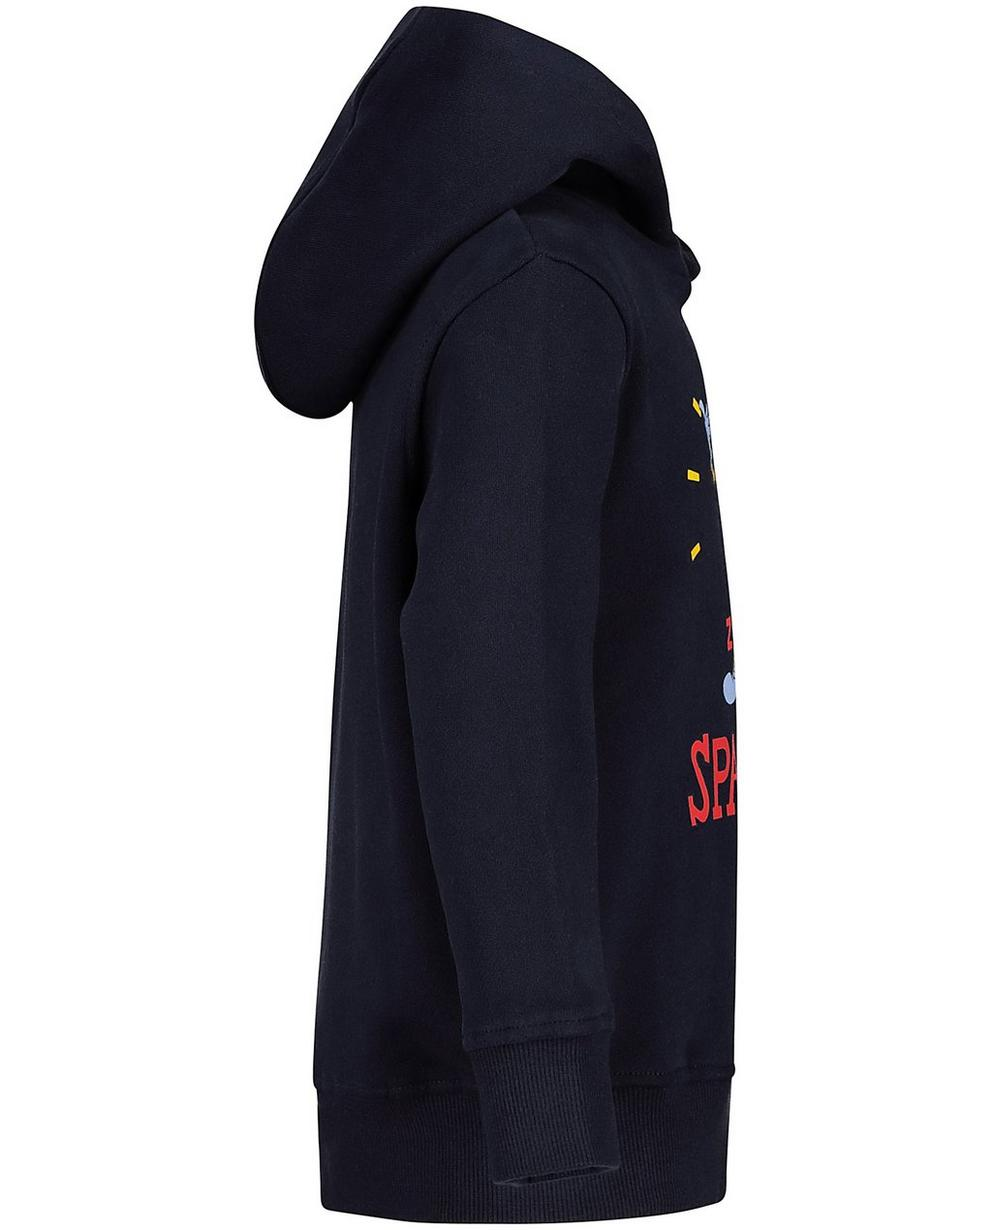 Sweats - navy -